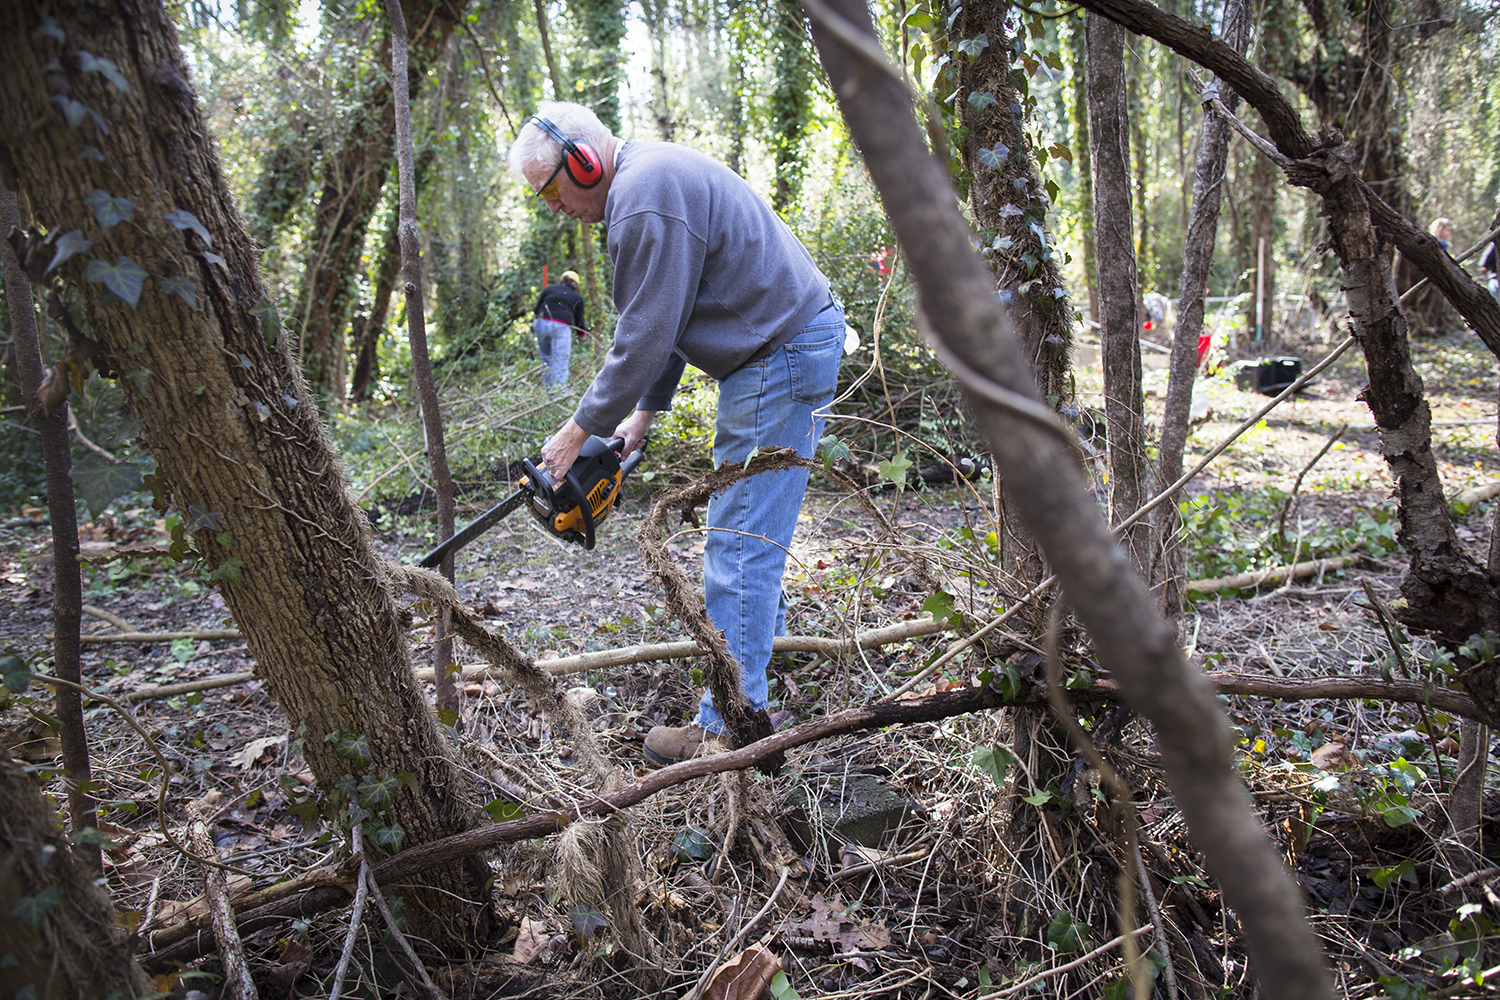 Volunteer coordinator John Shuck chainsaws vines into smaller, dragable pieces, East End Cemetery work day, January 2015. ©brianpalmer.photos 2015